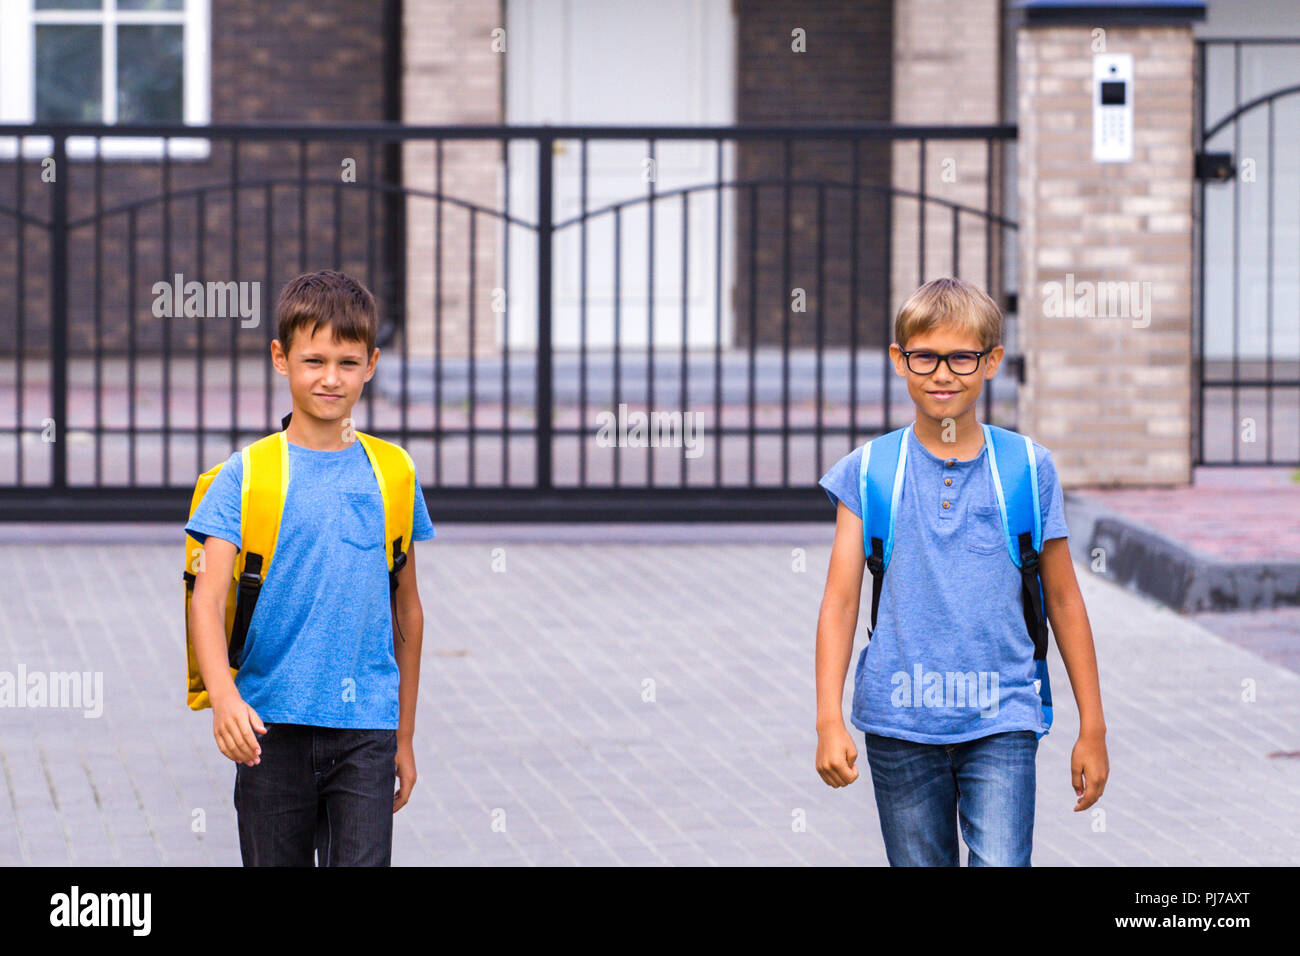 Schoolboys with backpack go to school - Stock Image